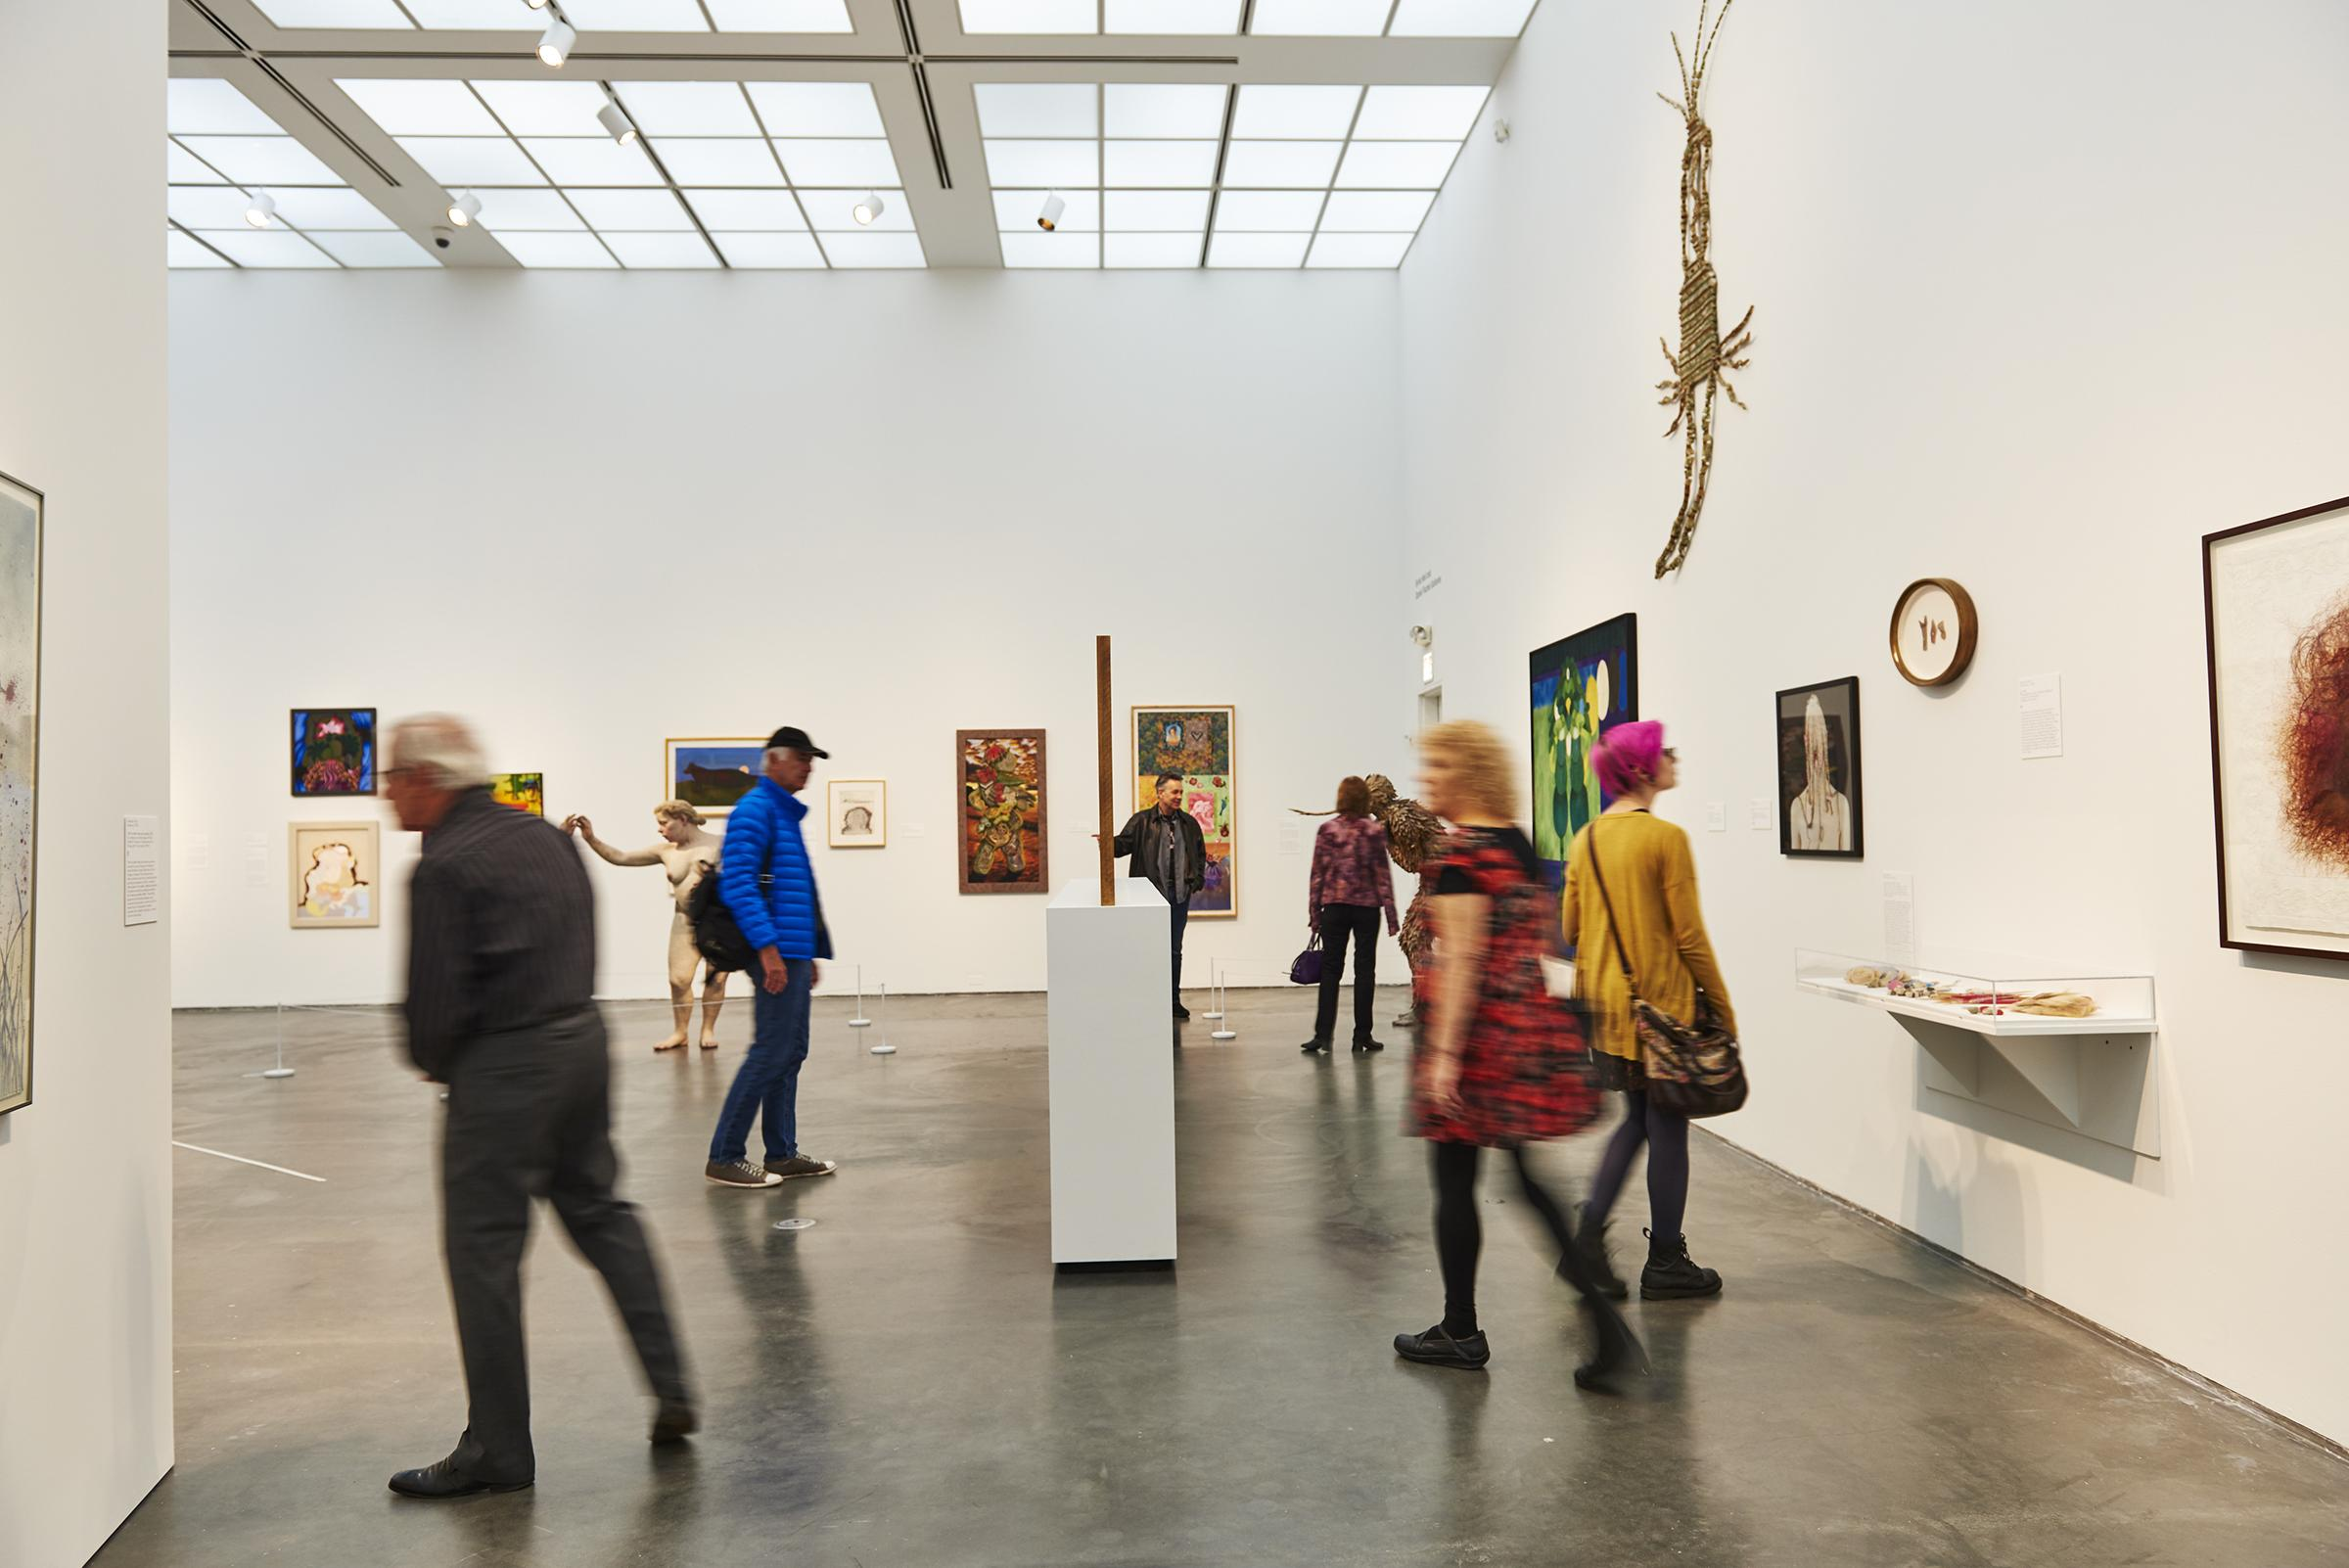 Visitors take in art in a gallery on the MCA's second floor.